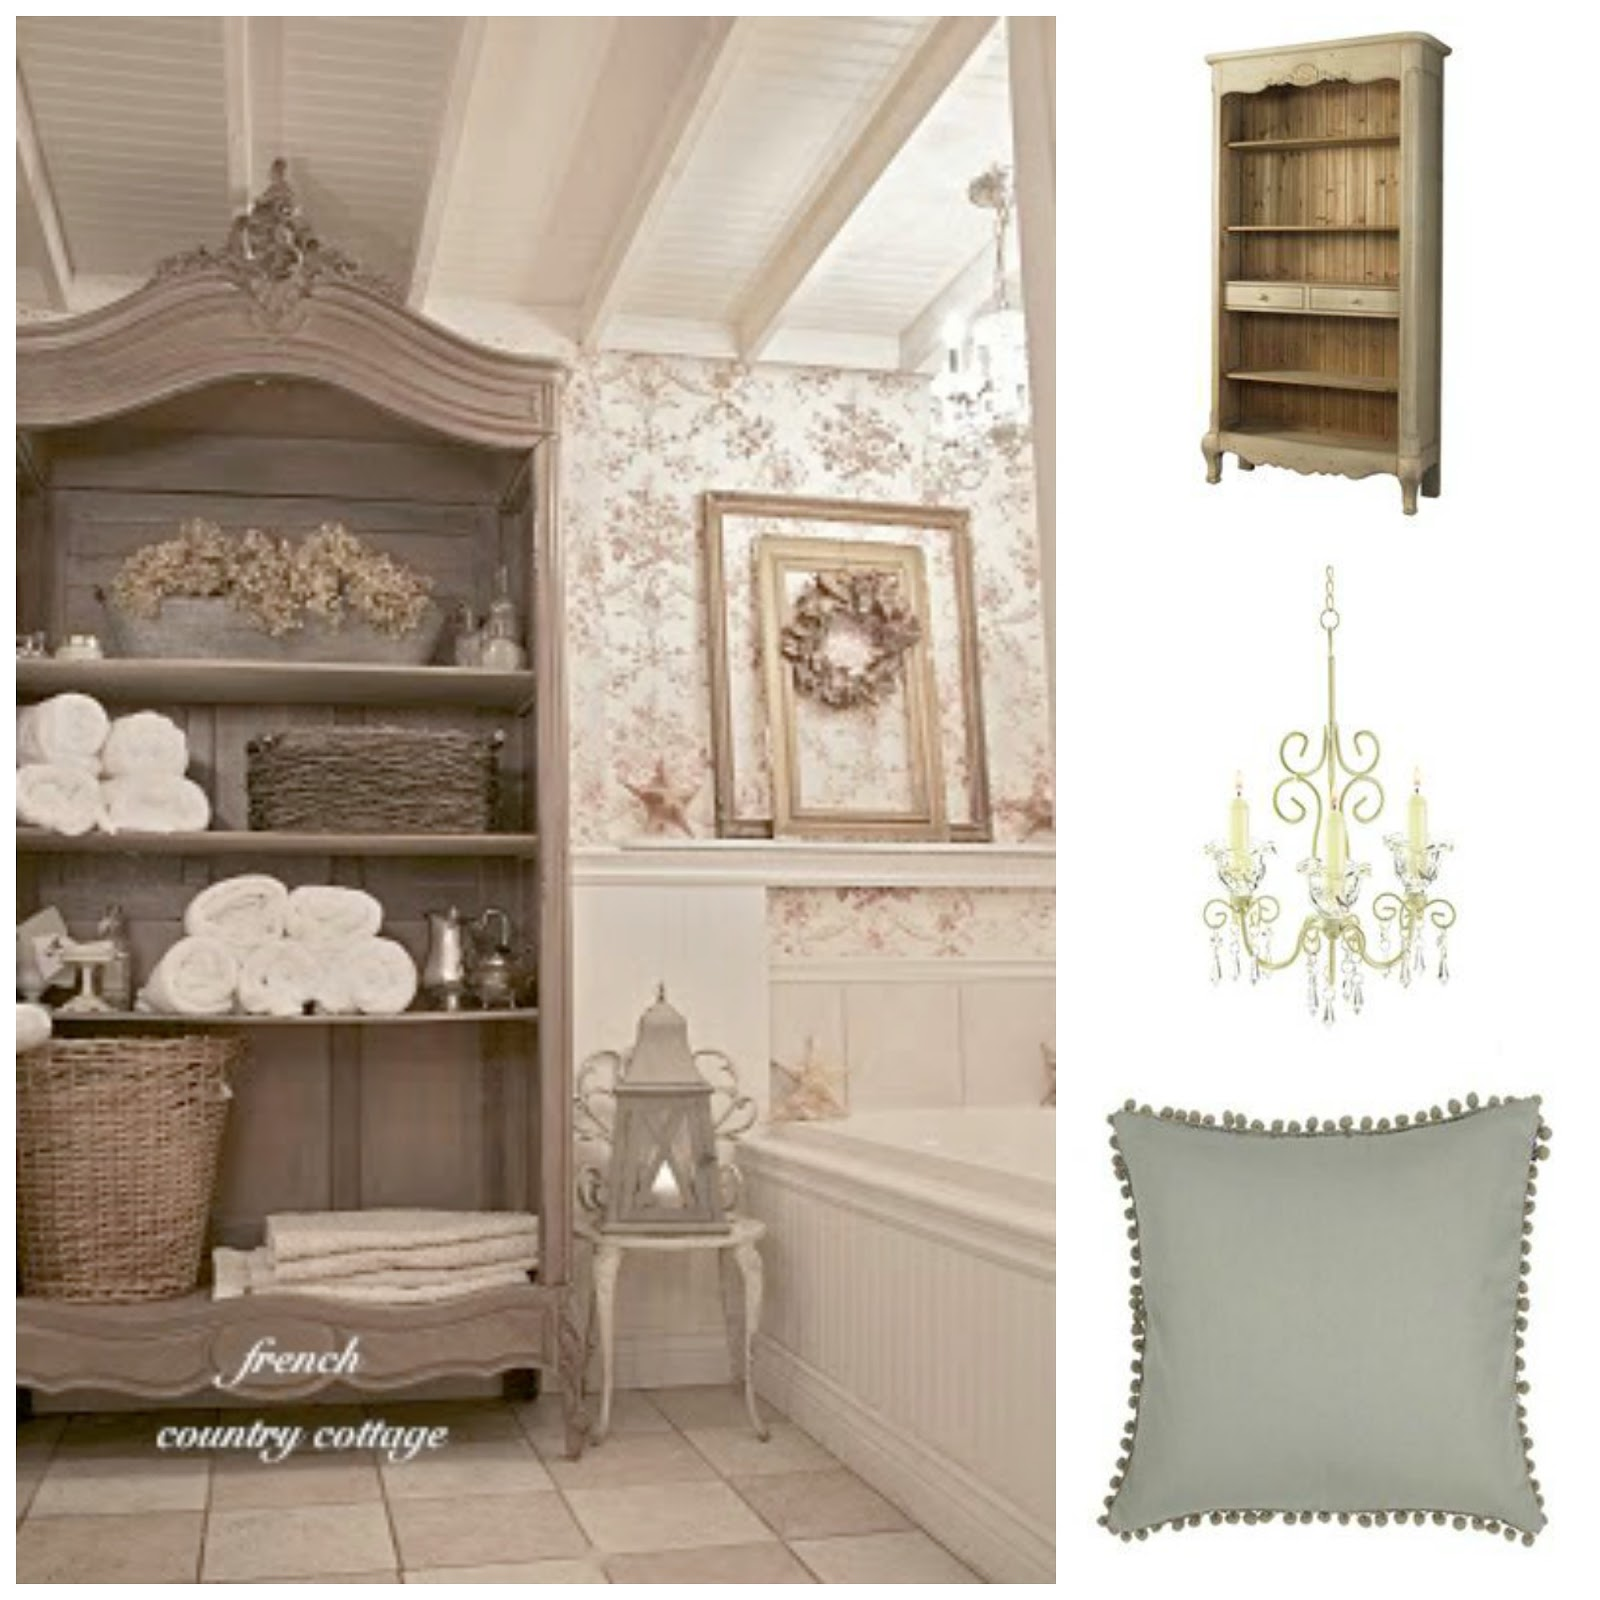 French Country Cottage Feature: French Country Cottage Joss & Main Curated Collection